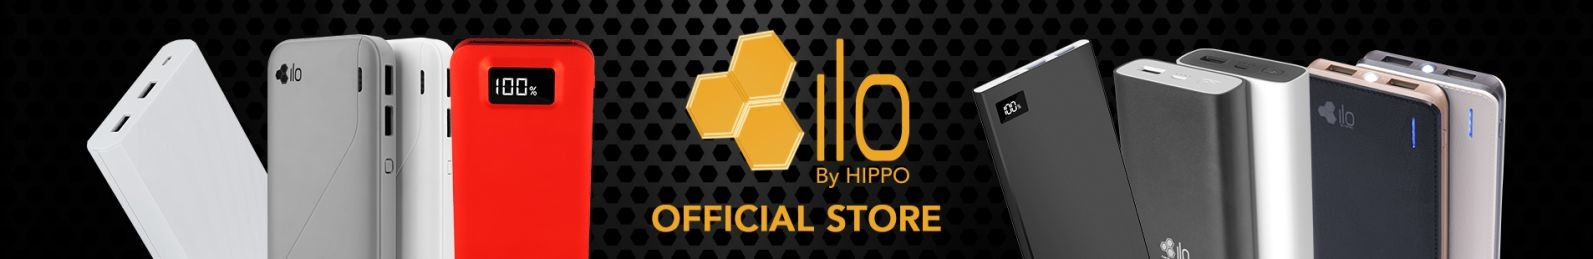 iLo Official Store